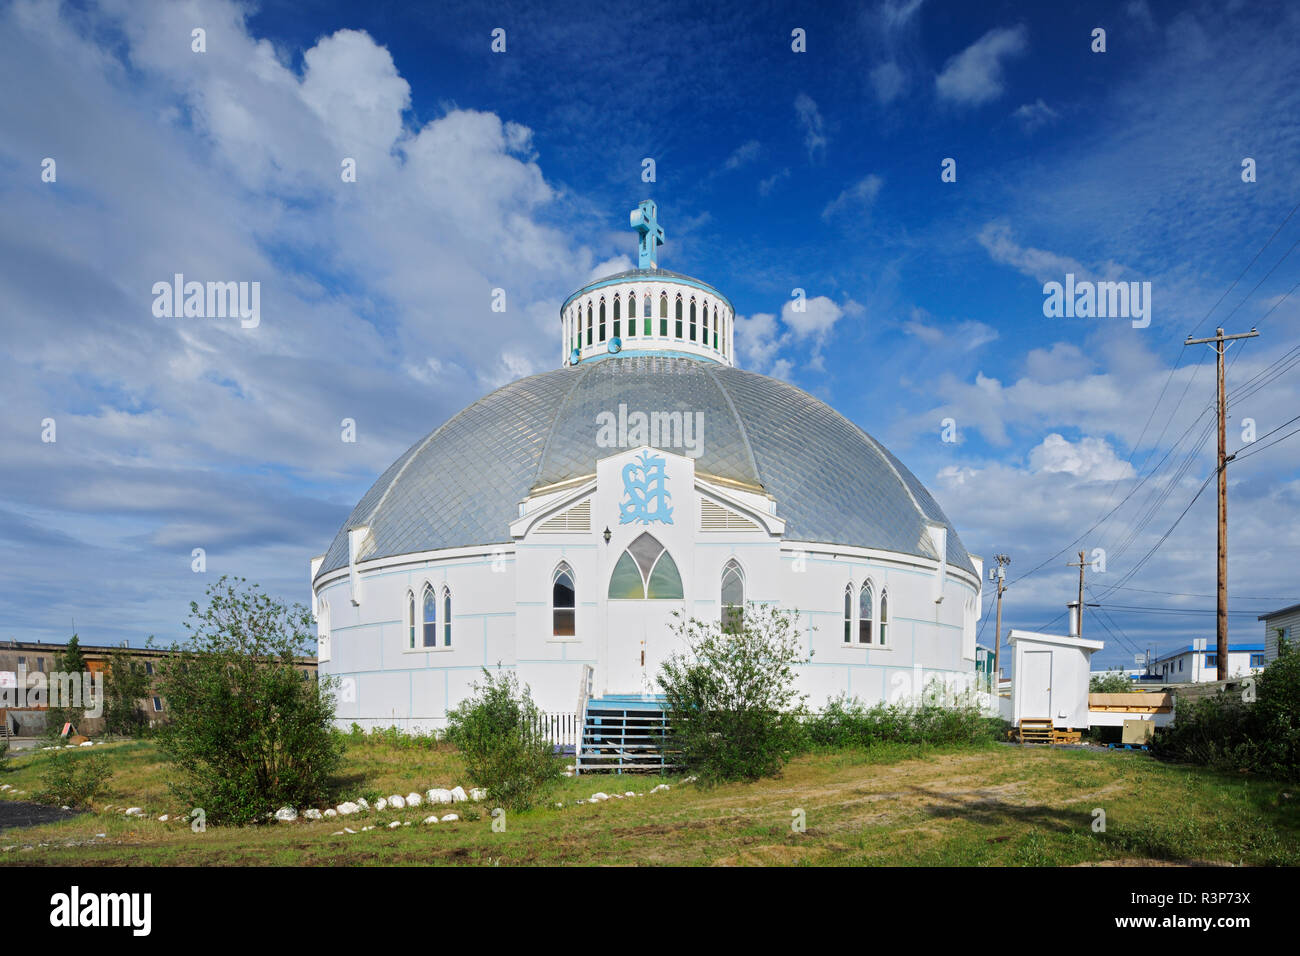 Canada, Northwest Territories, Inuvik. Our Lady of Victory Parish church. - Stock Image